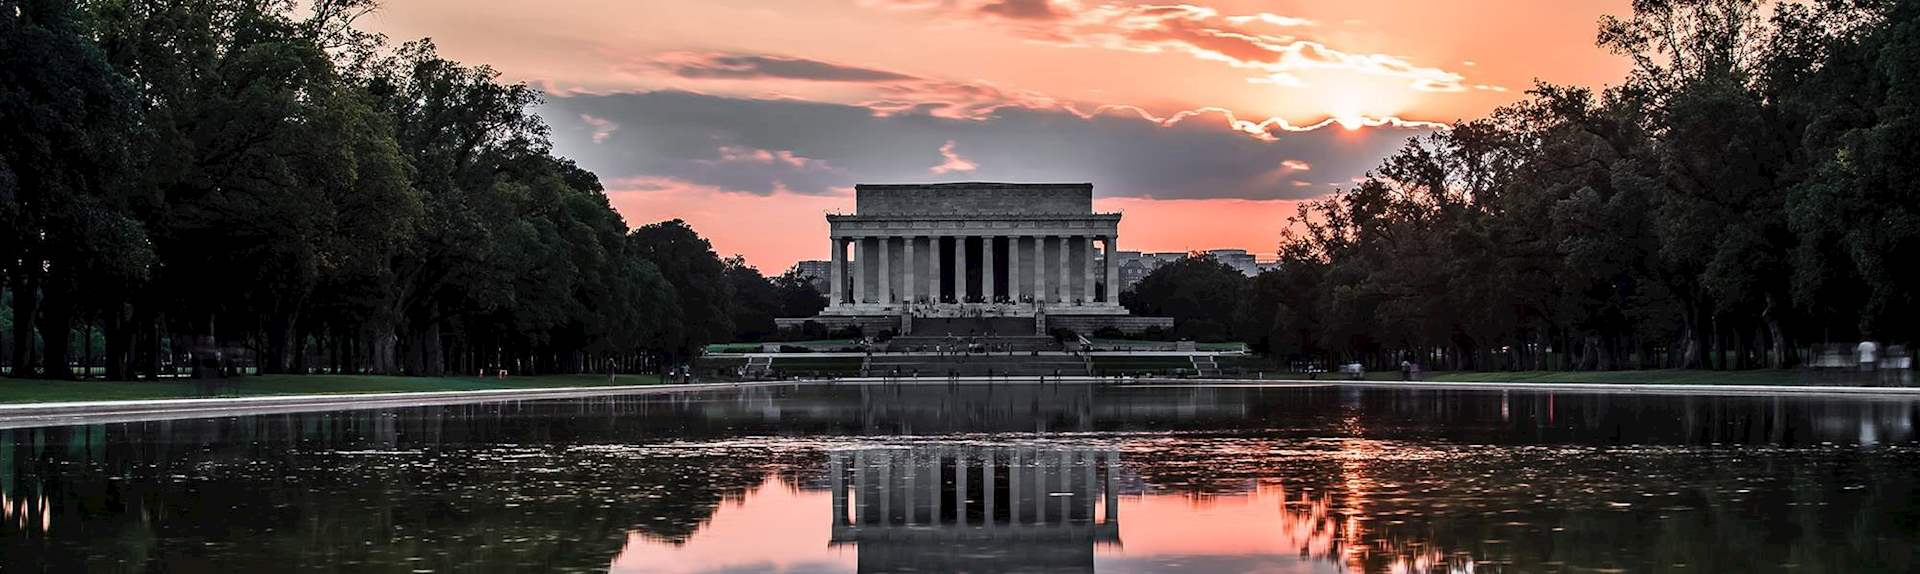 Explore in Washington, District of Columbia